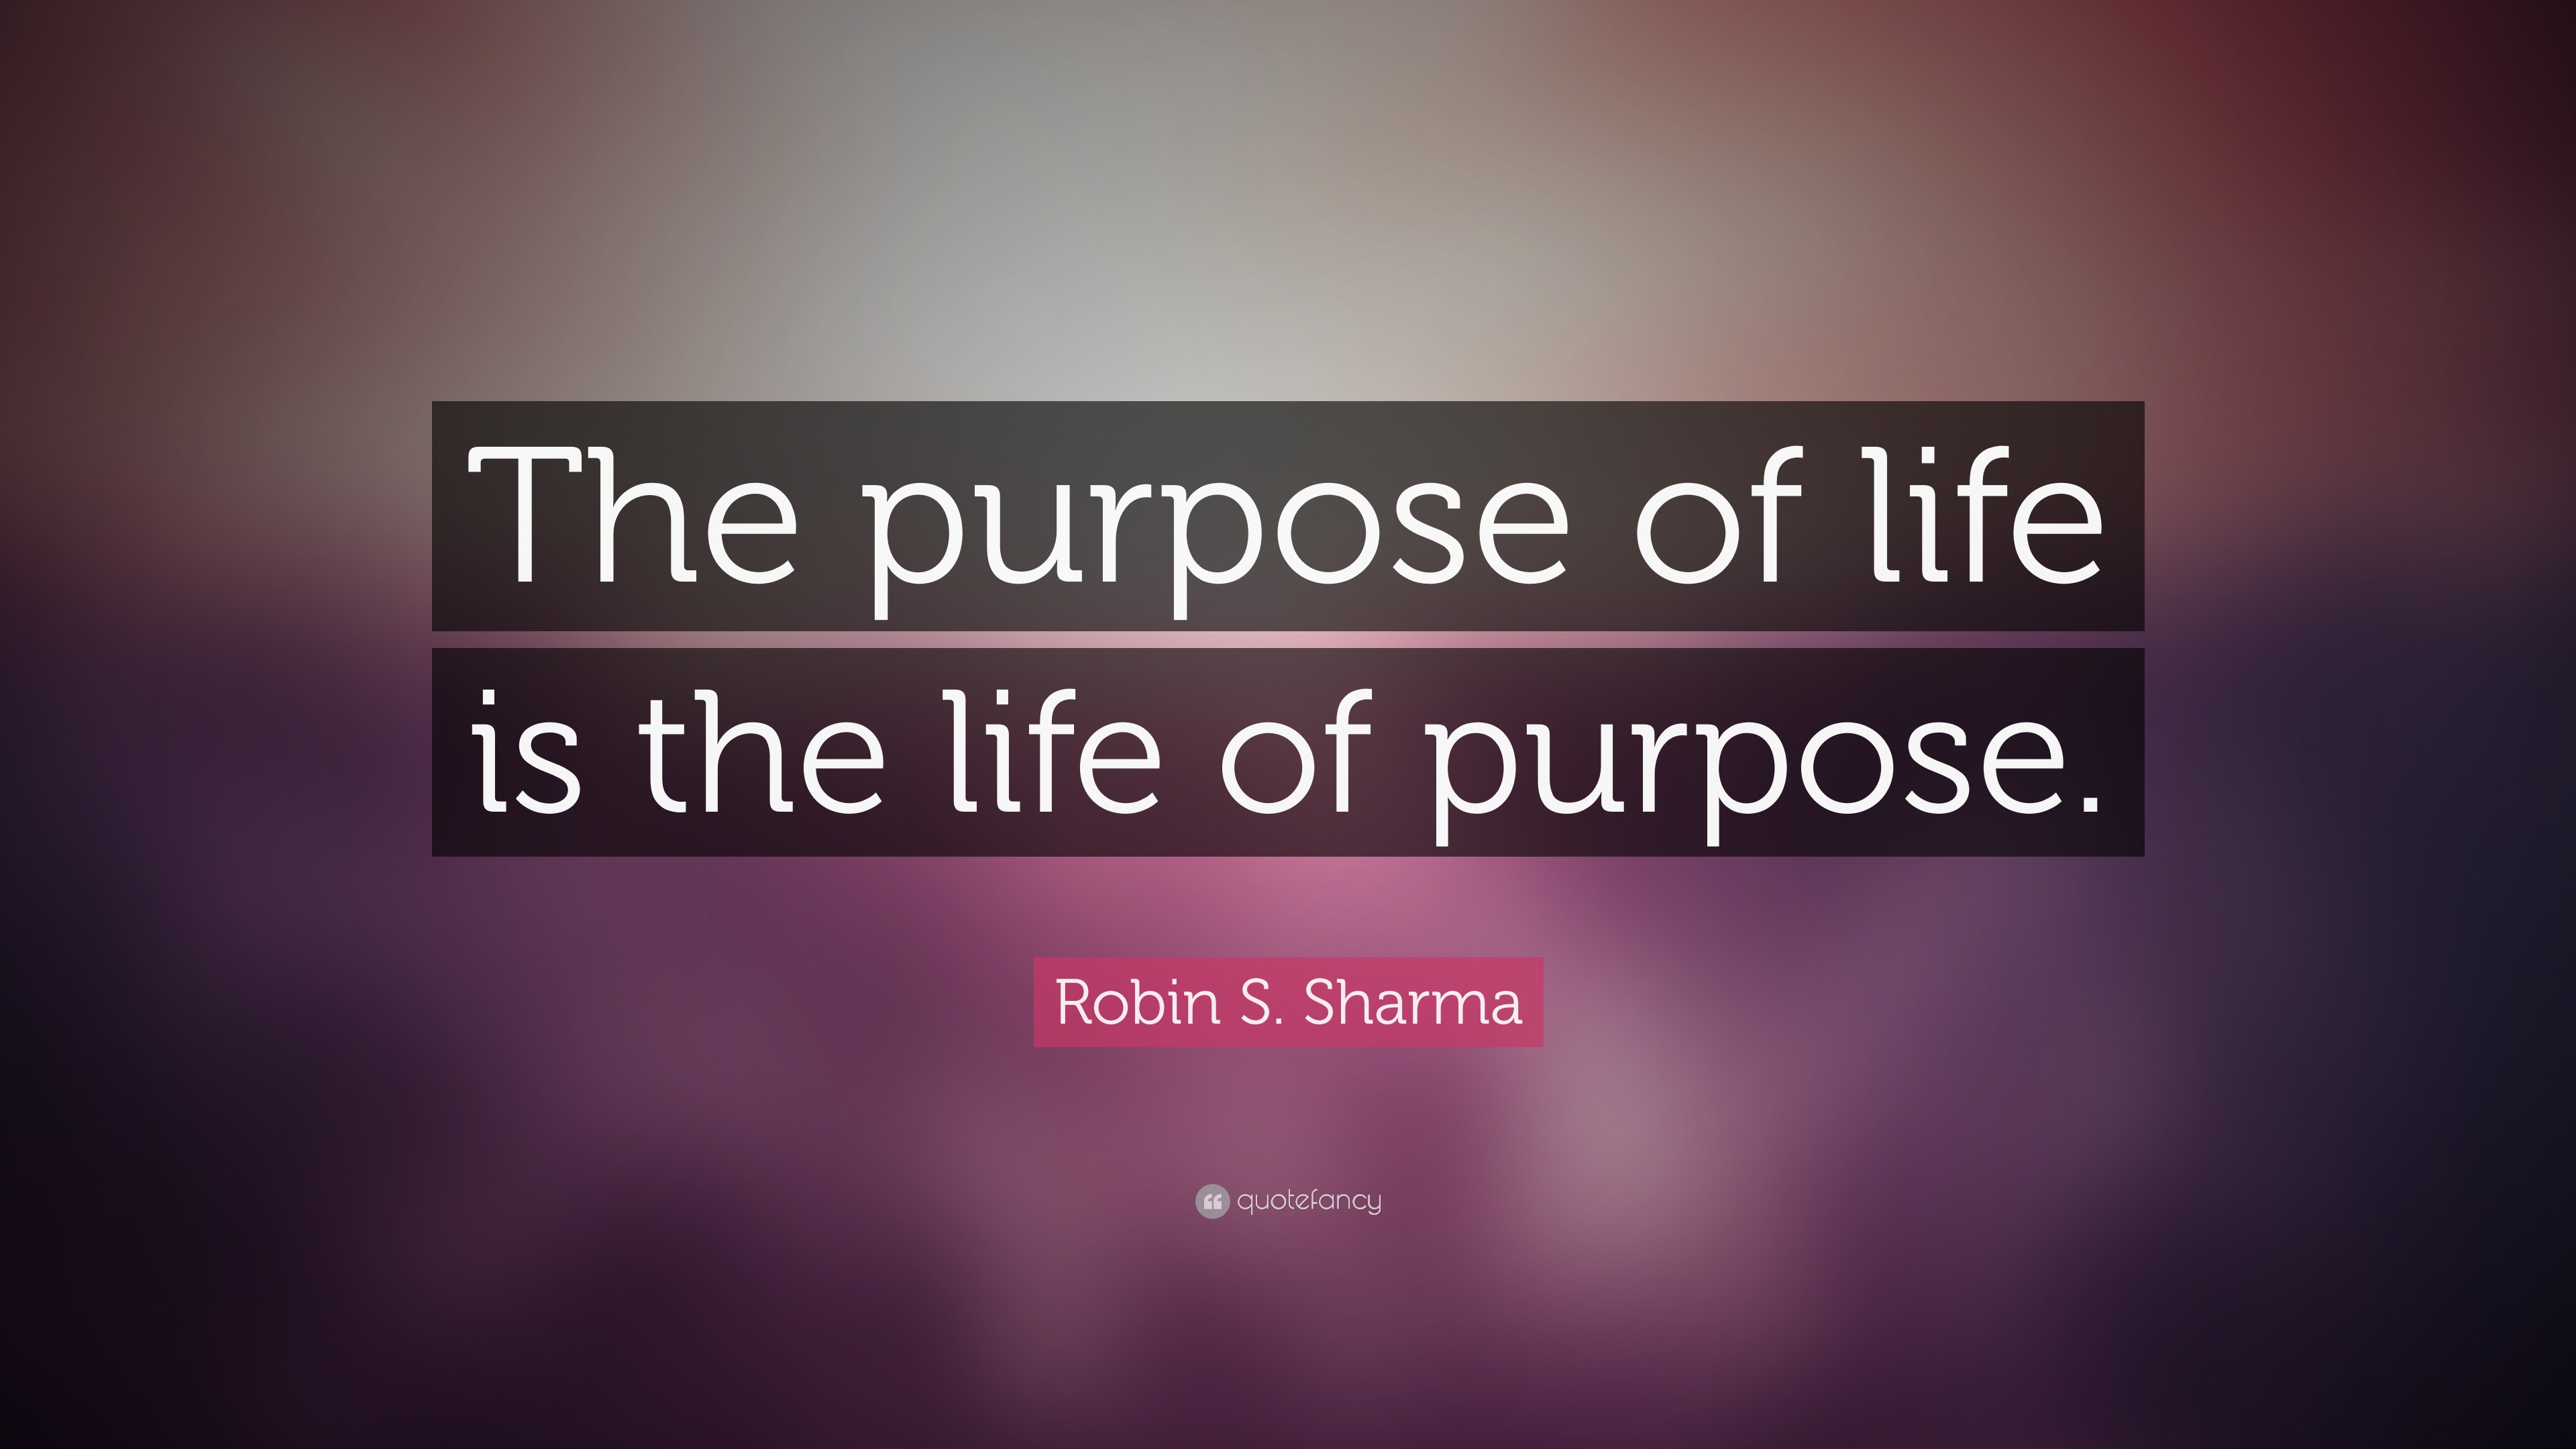 Quotes Purpose Of Life Purpose Of Life Quotes Simple Purpose Of Life Quotes 007 The Soul